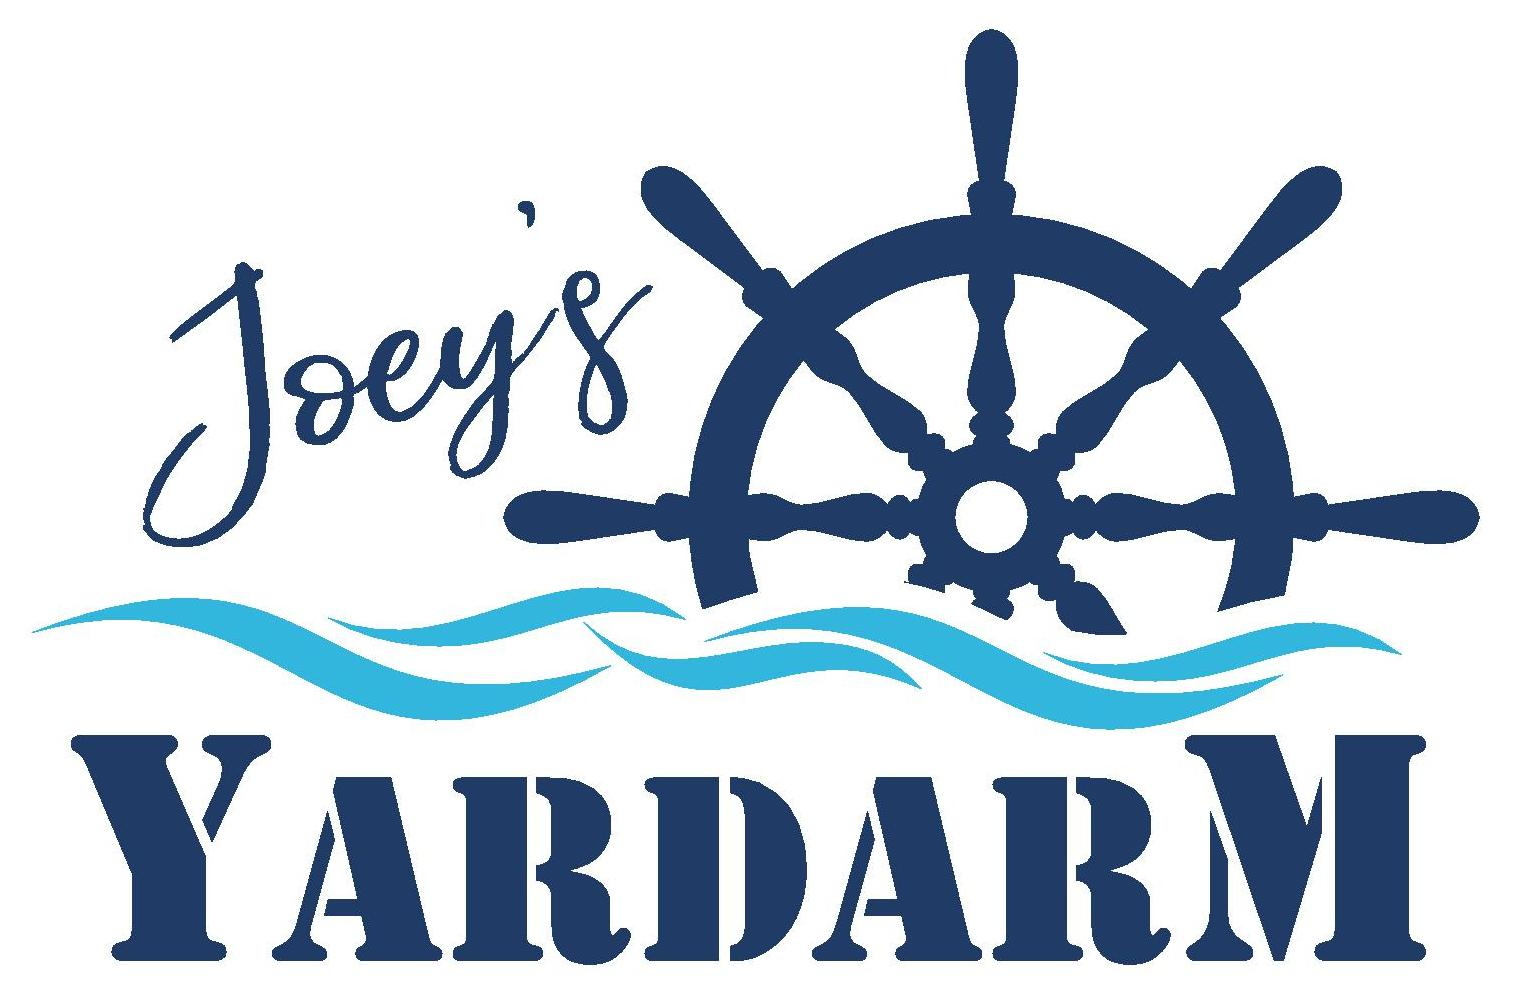 u.11271.Joeys Yardarm Logo final-page-001.jpg